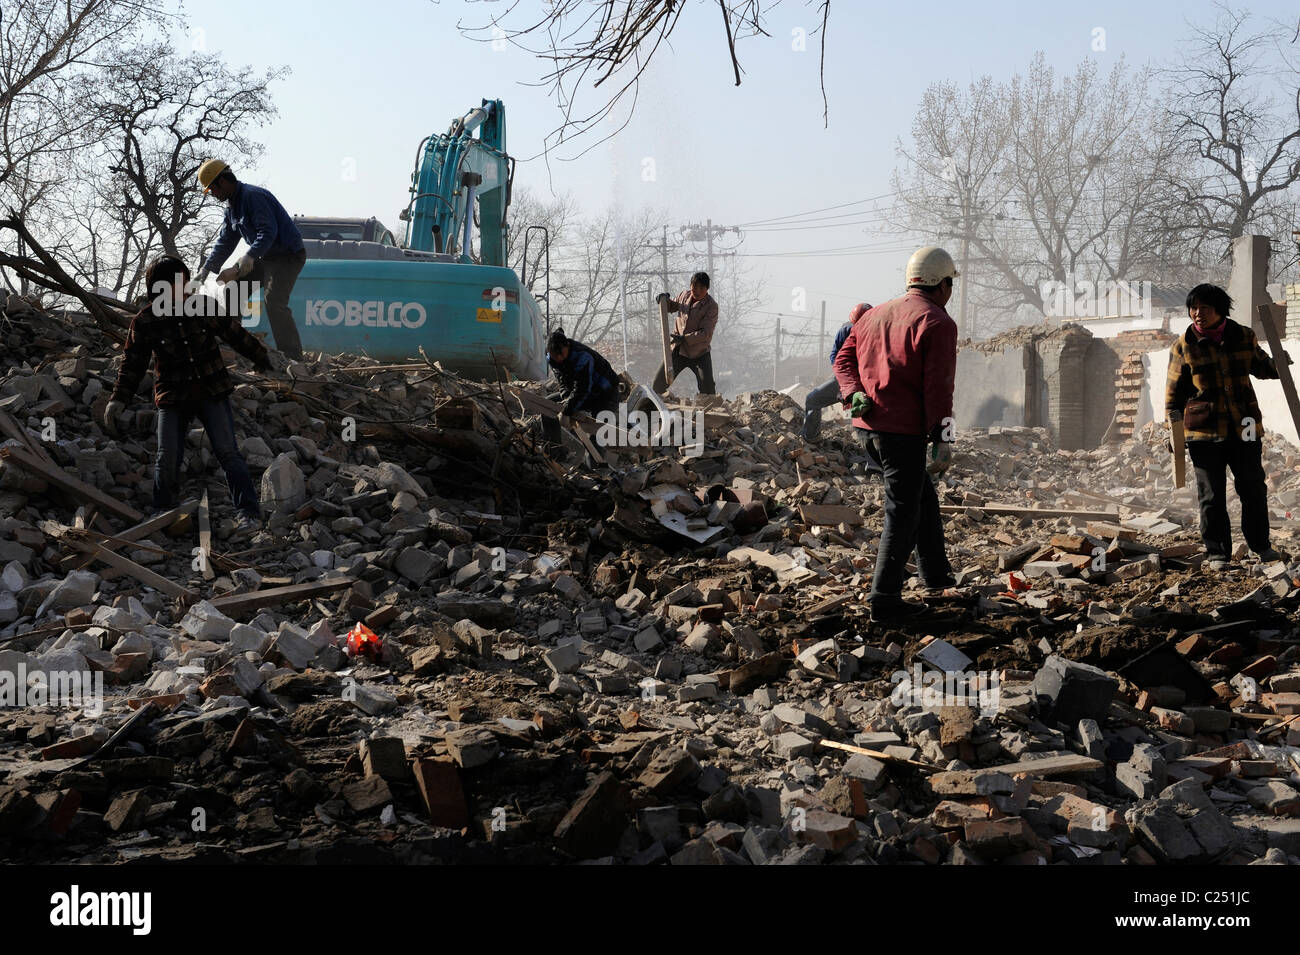 People collect recycle materials from ruins of demolished houses in central Beijing, China.20-Mar-2011 - Stock Image